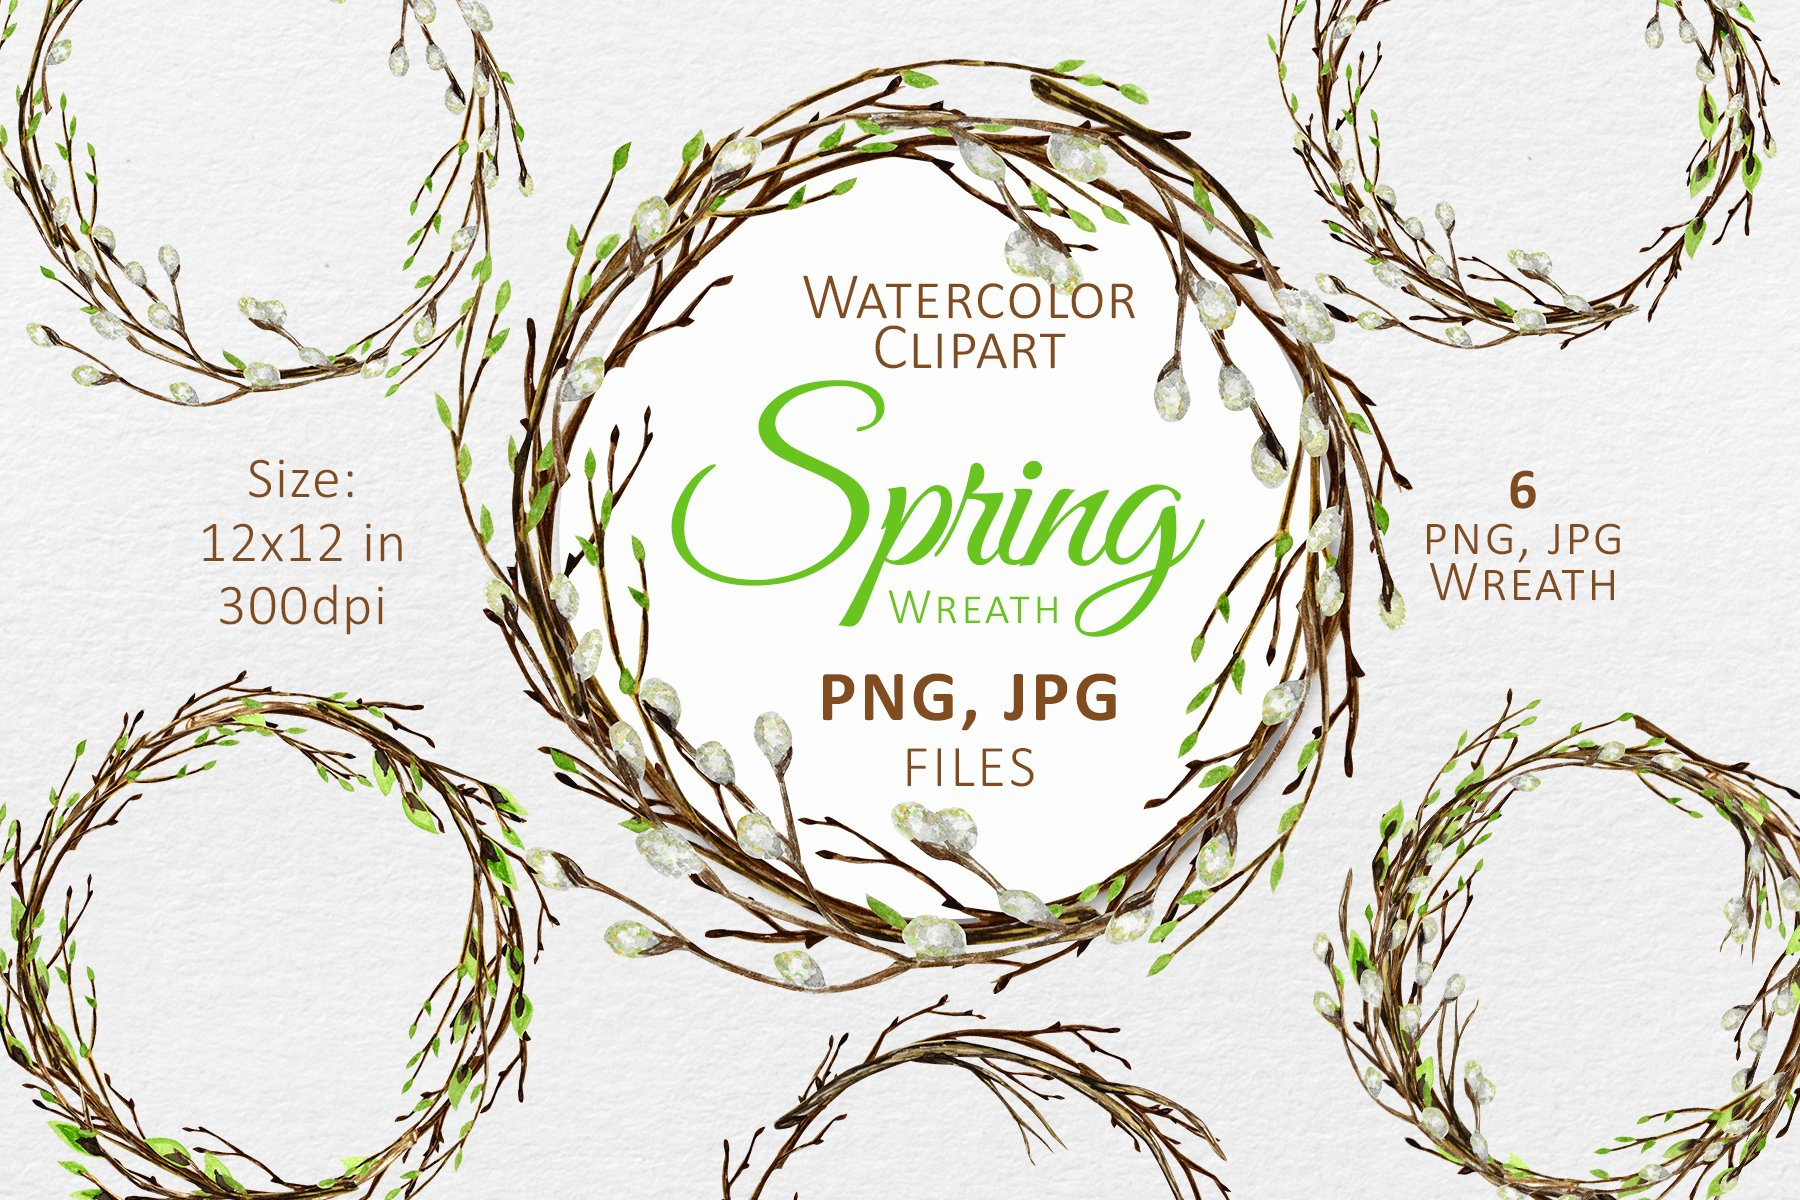 Spring Easter Wreath Png Clipart Watercolor Holiday Frame 1164028 Illustrations Design Bundles